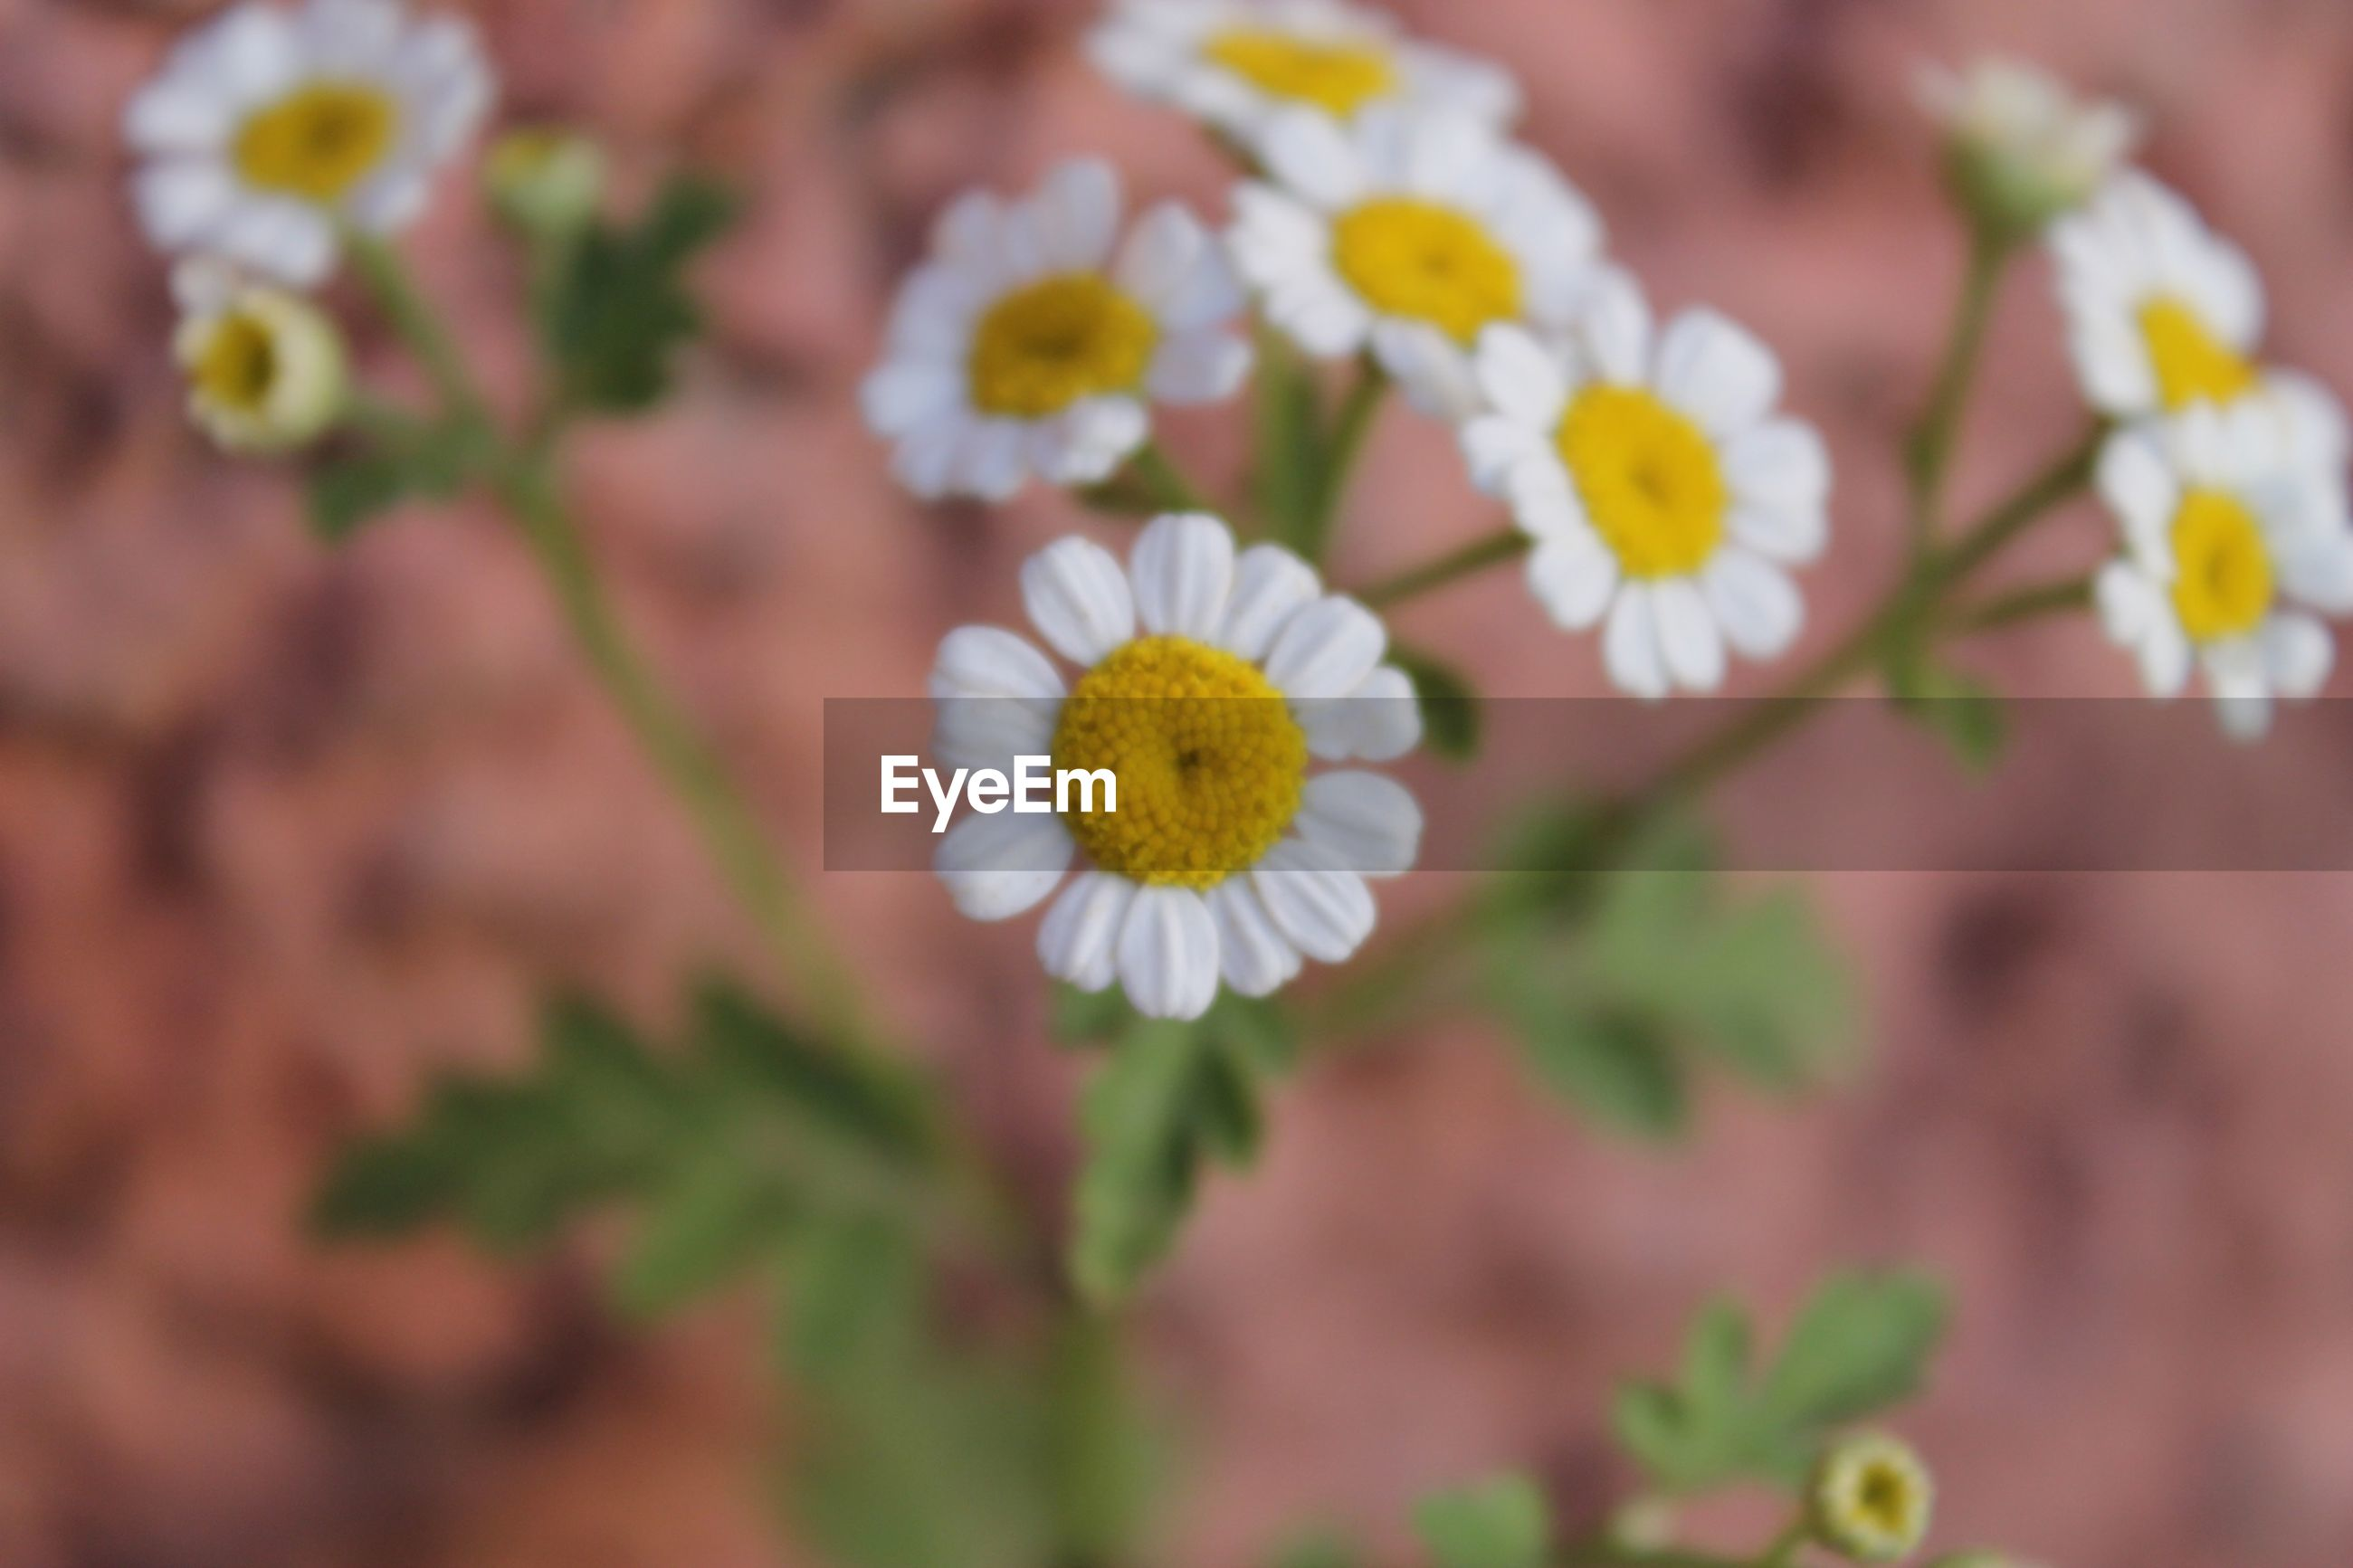 flower, freshness, petal, fragility, flower head, beauty in nature, growth, blooming, close-up, focus on foreground, nature, pollen, white color, yellow, in bloom, plant, selective focus, daisy, blossom, stamen